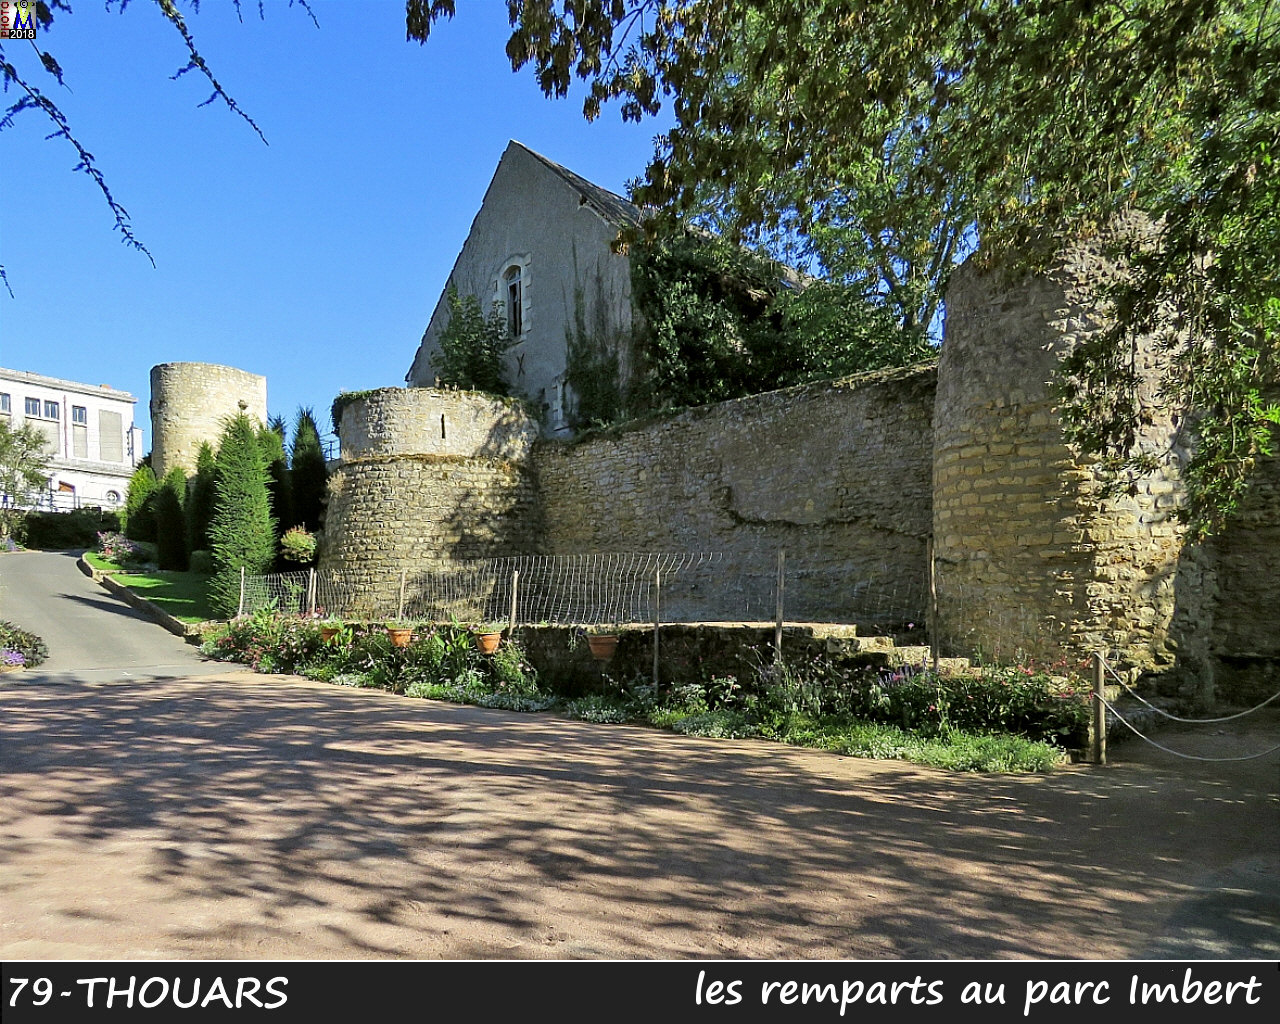 79THOUARS_remparts_1002.jpg